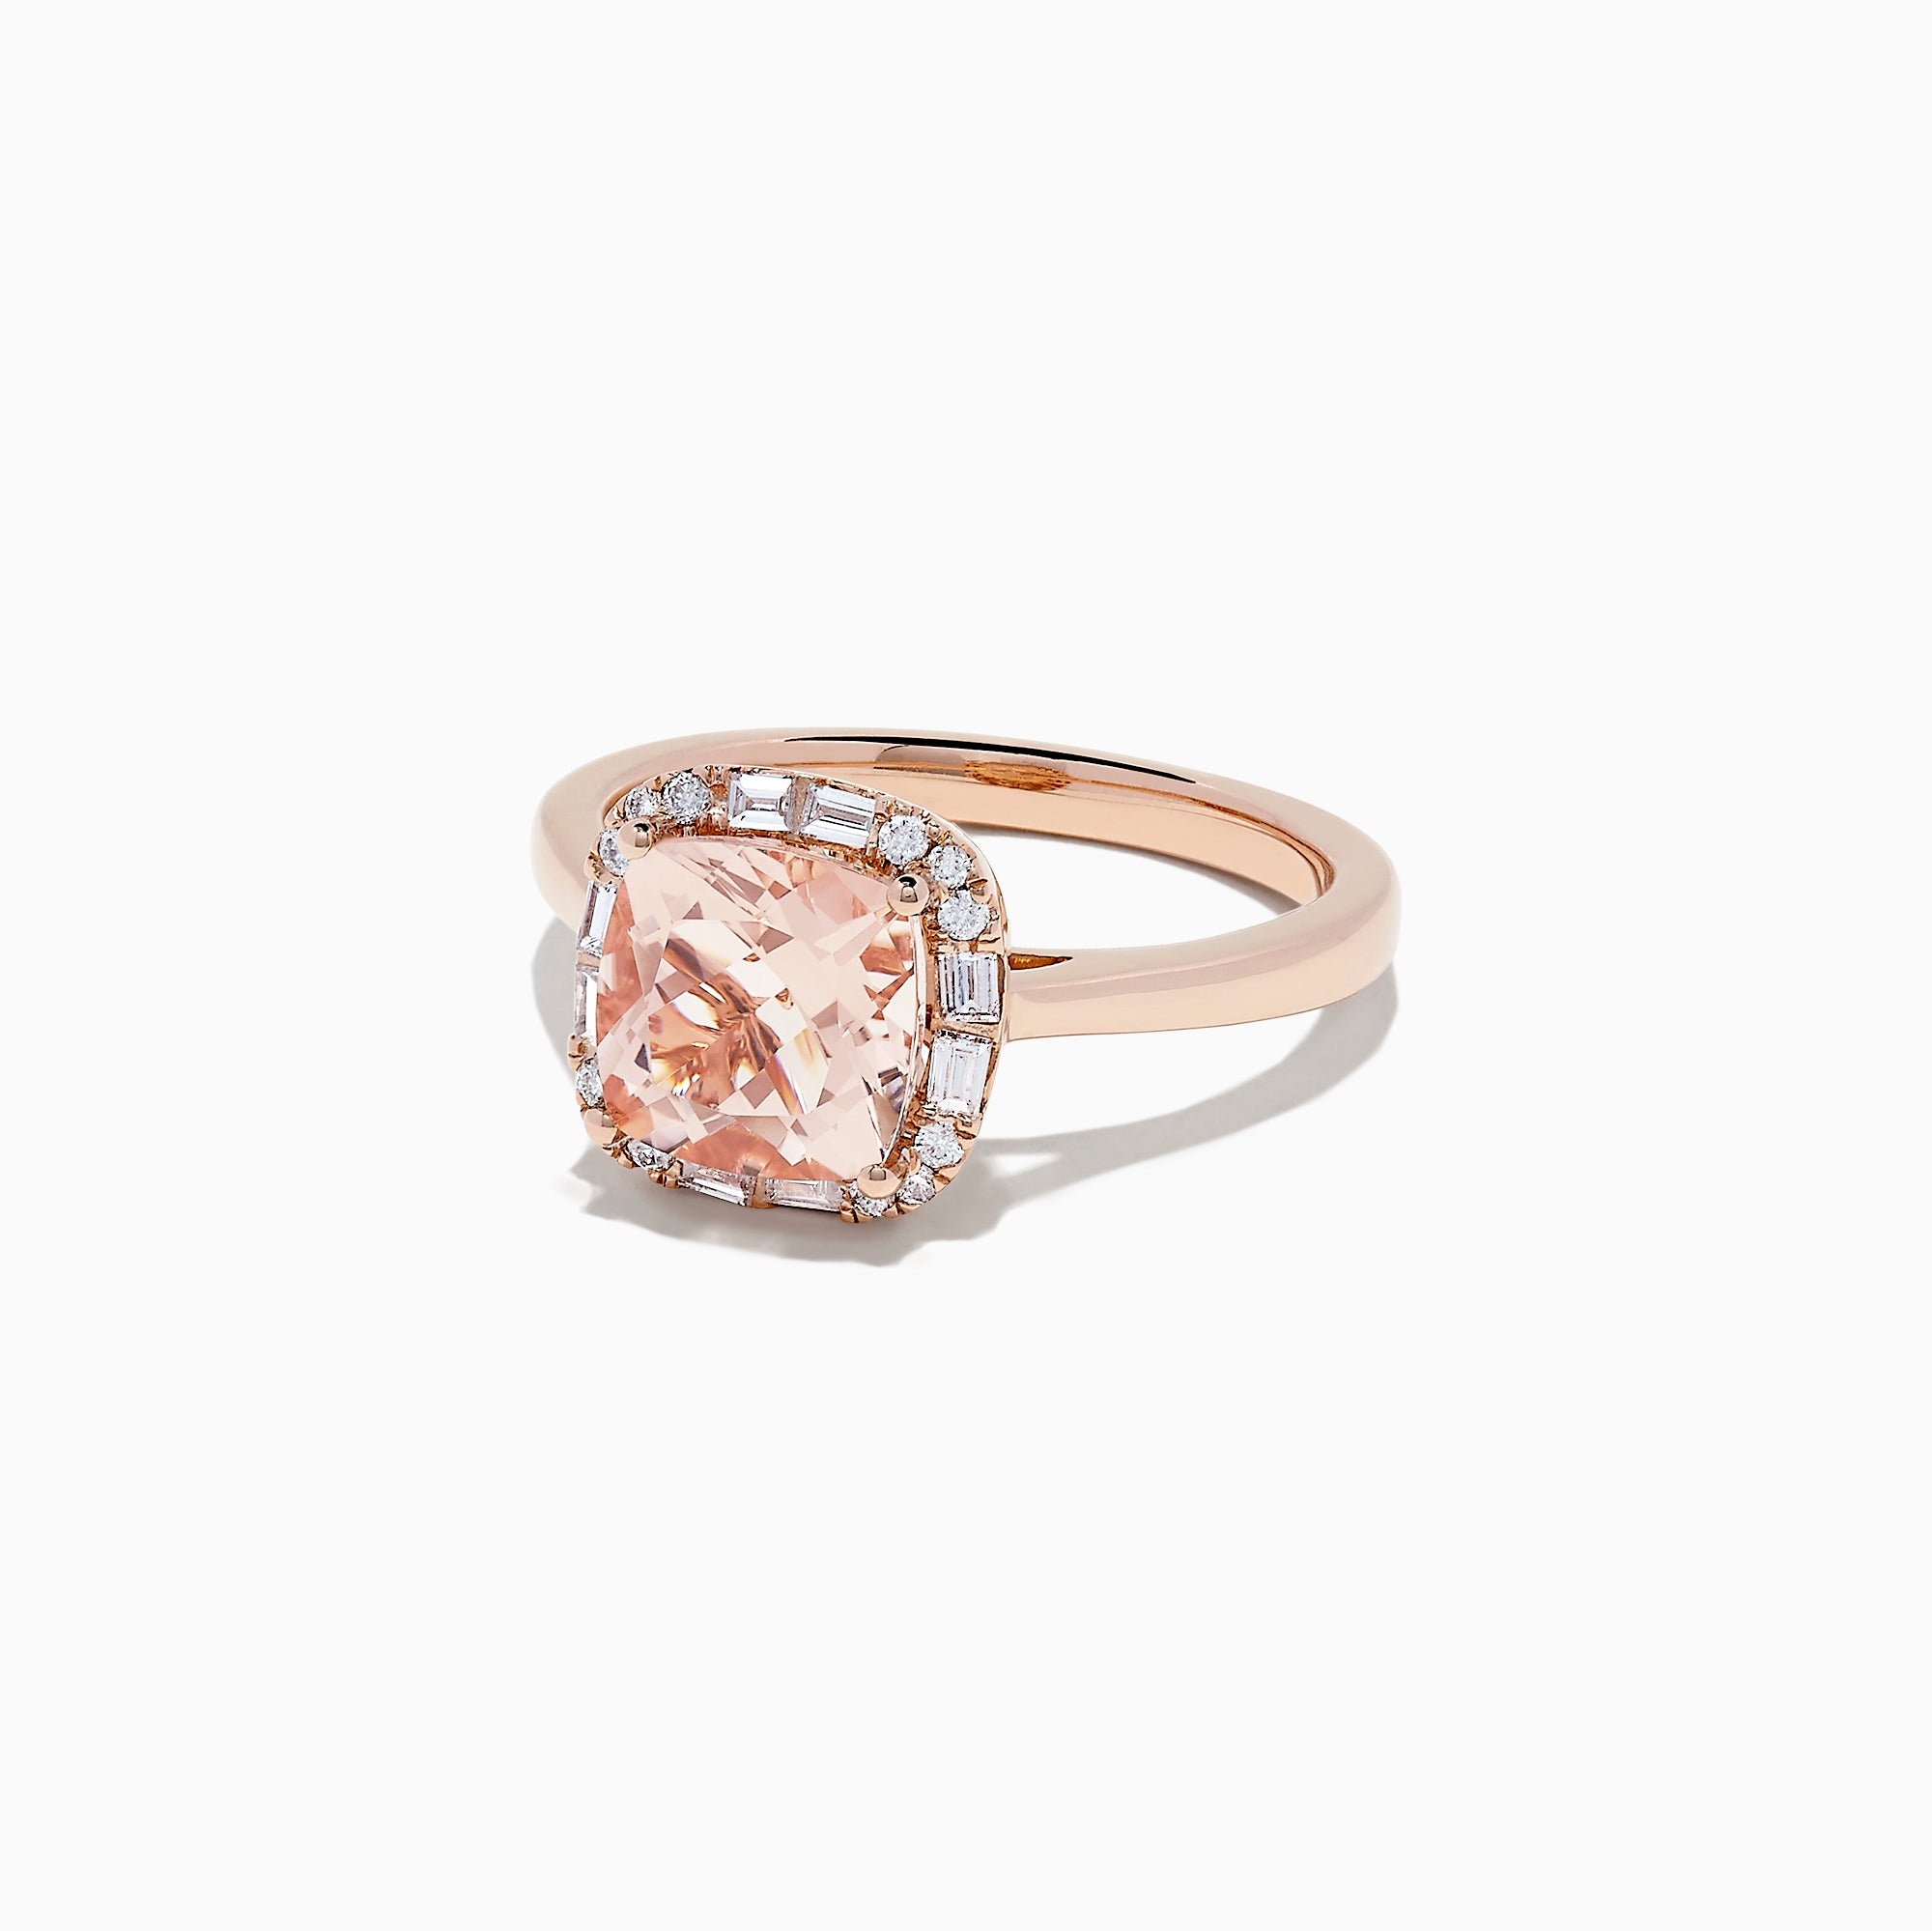 Effy Blush 14K Rose Gold Morganite and Diamond Ring, 2.16 TCW